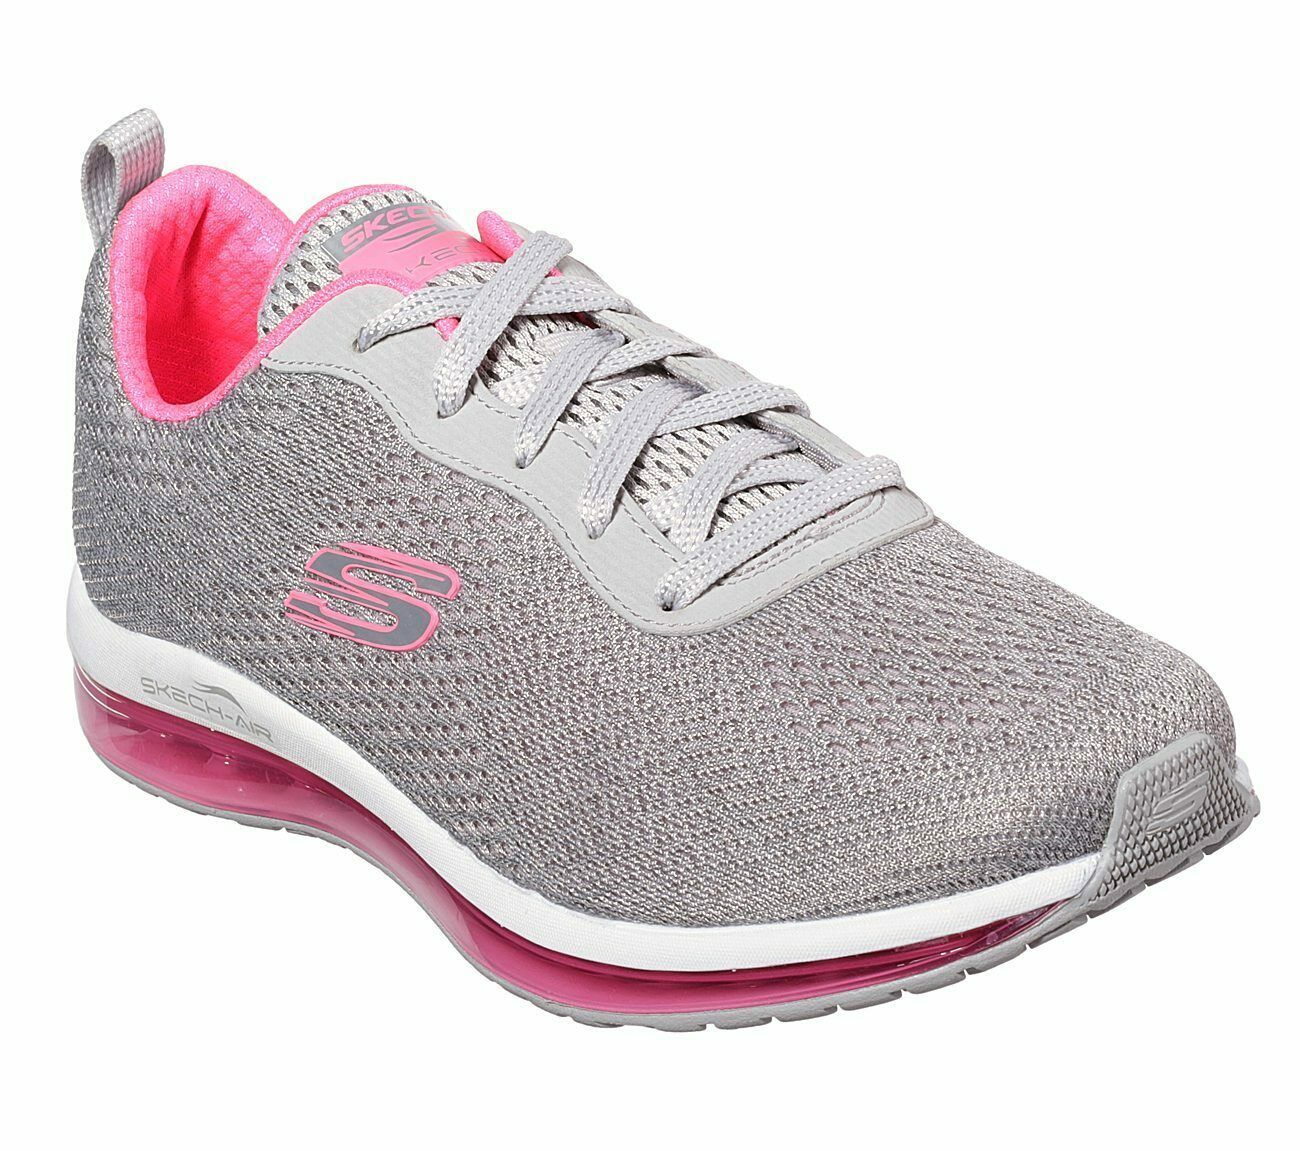 Skechers Shoes Women Gray Pink Memory Foam Sport Air Cushion Mesh Comfort 12644